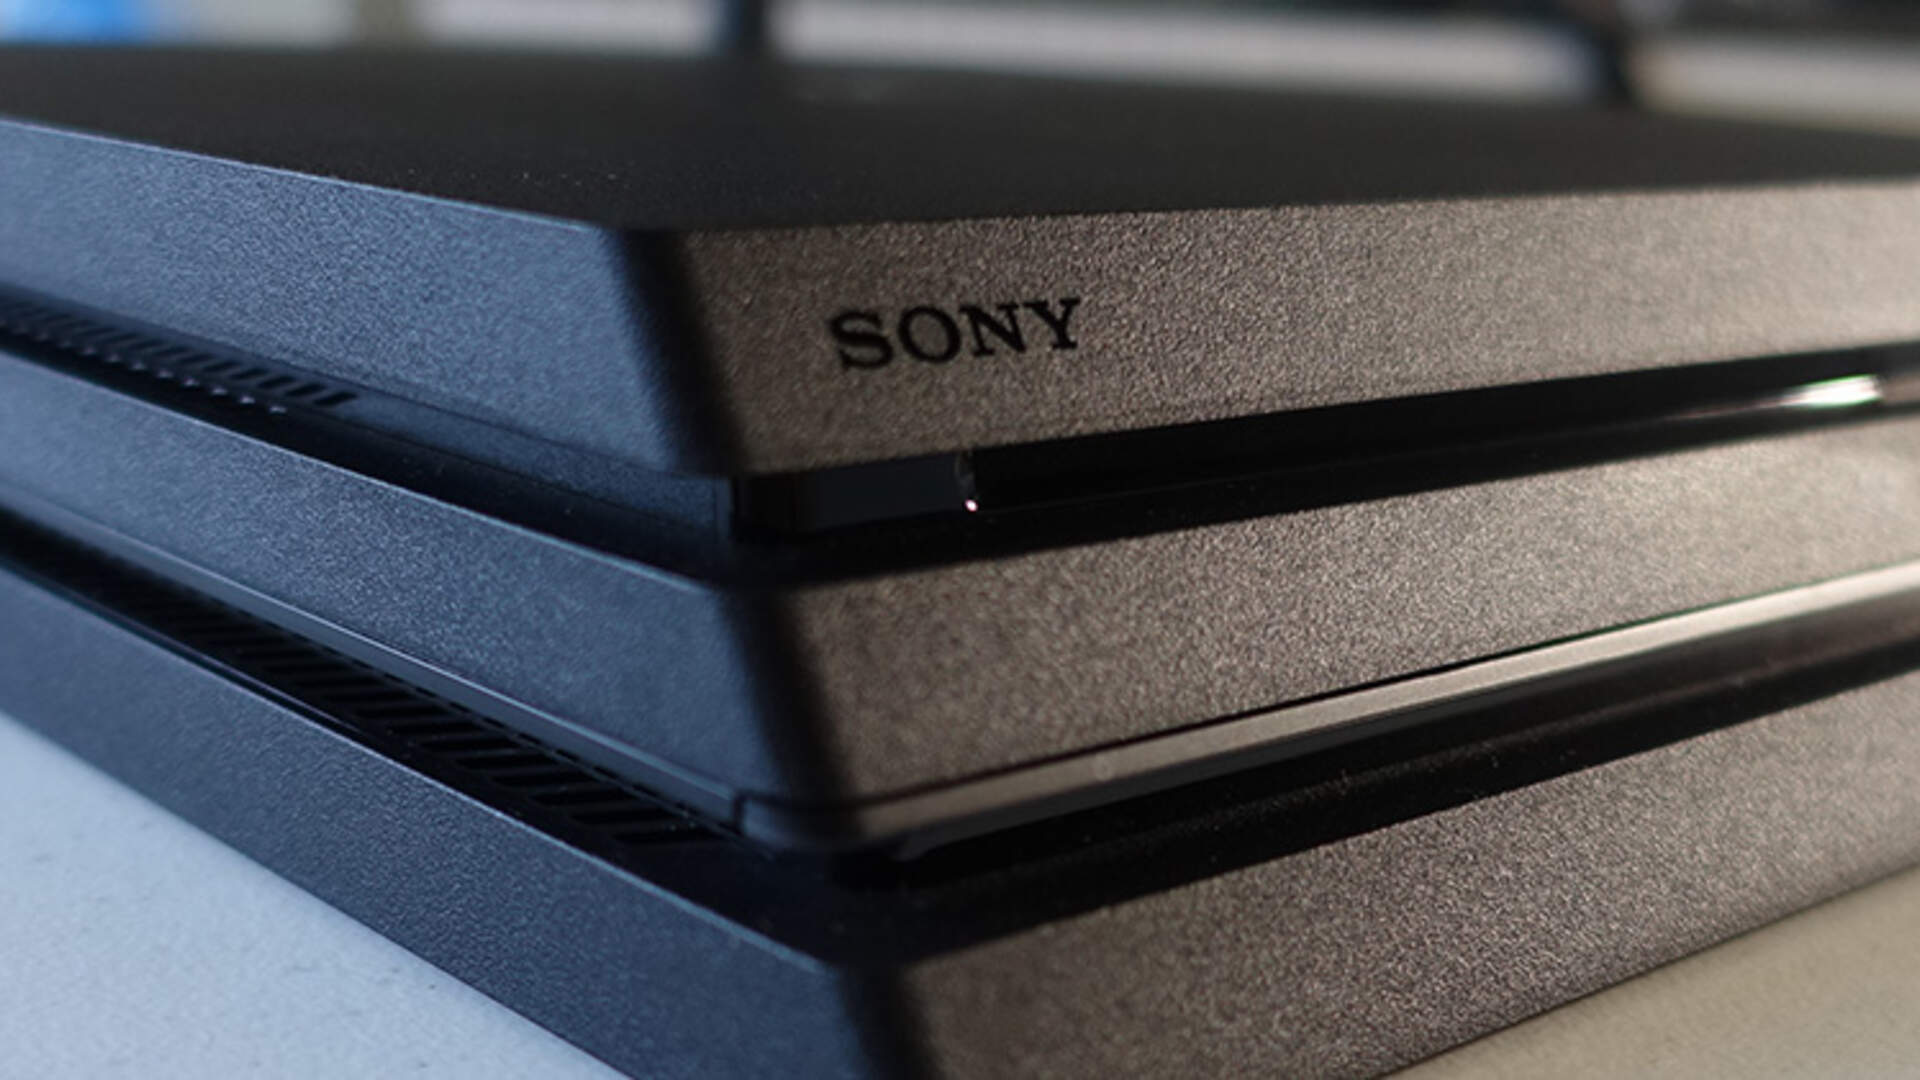 PlayStation 4 Pro Review: The PS4's Image (Quality) Gets a Tune-Up